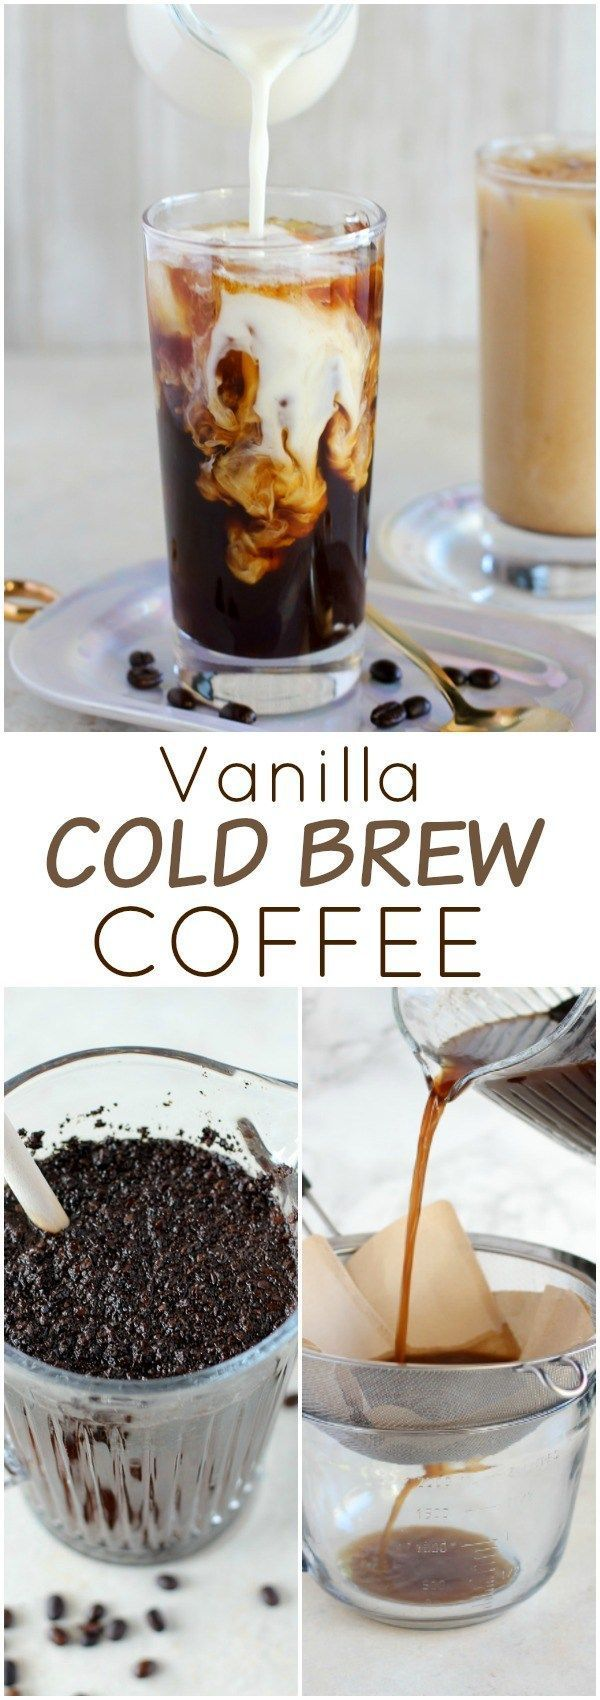 Vanilla Cold Brew Coffee Easy homemade cold brew coffee